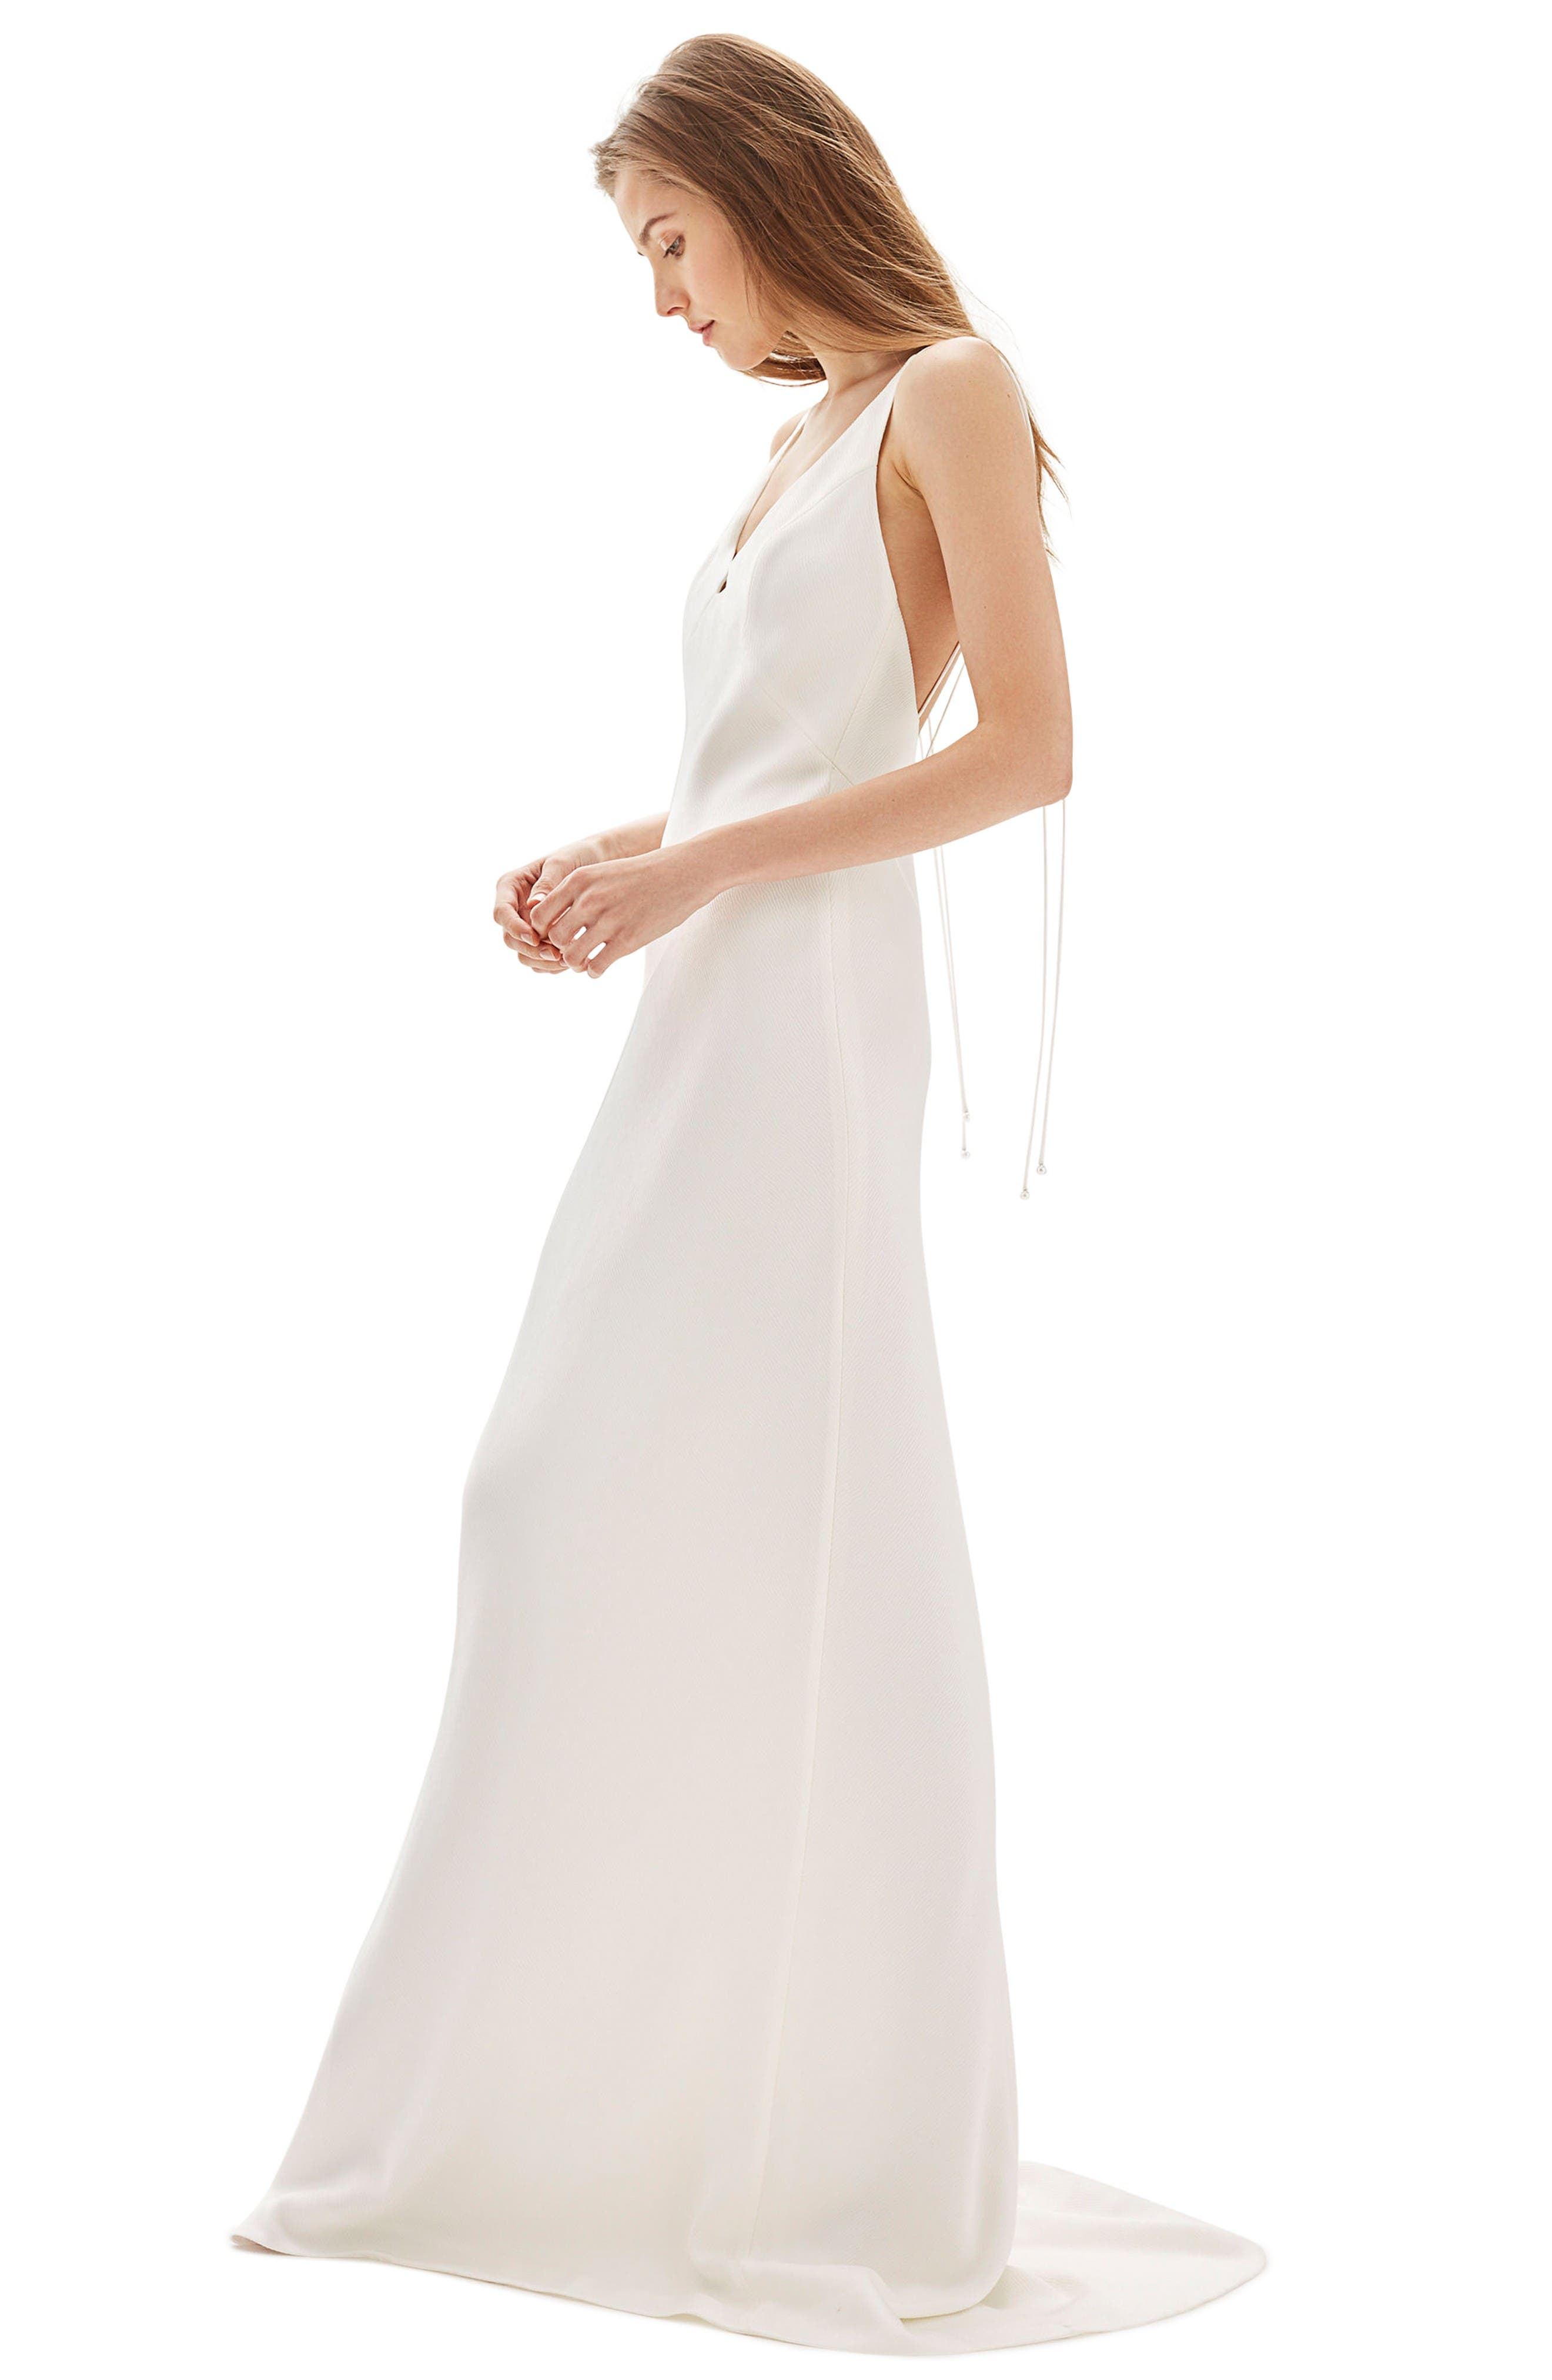 Bride V-Neck Satin Sheath Gown,                             Alternate thumbnail 4, color,                             Ivory